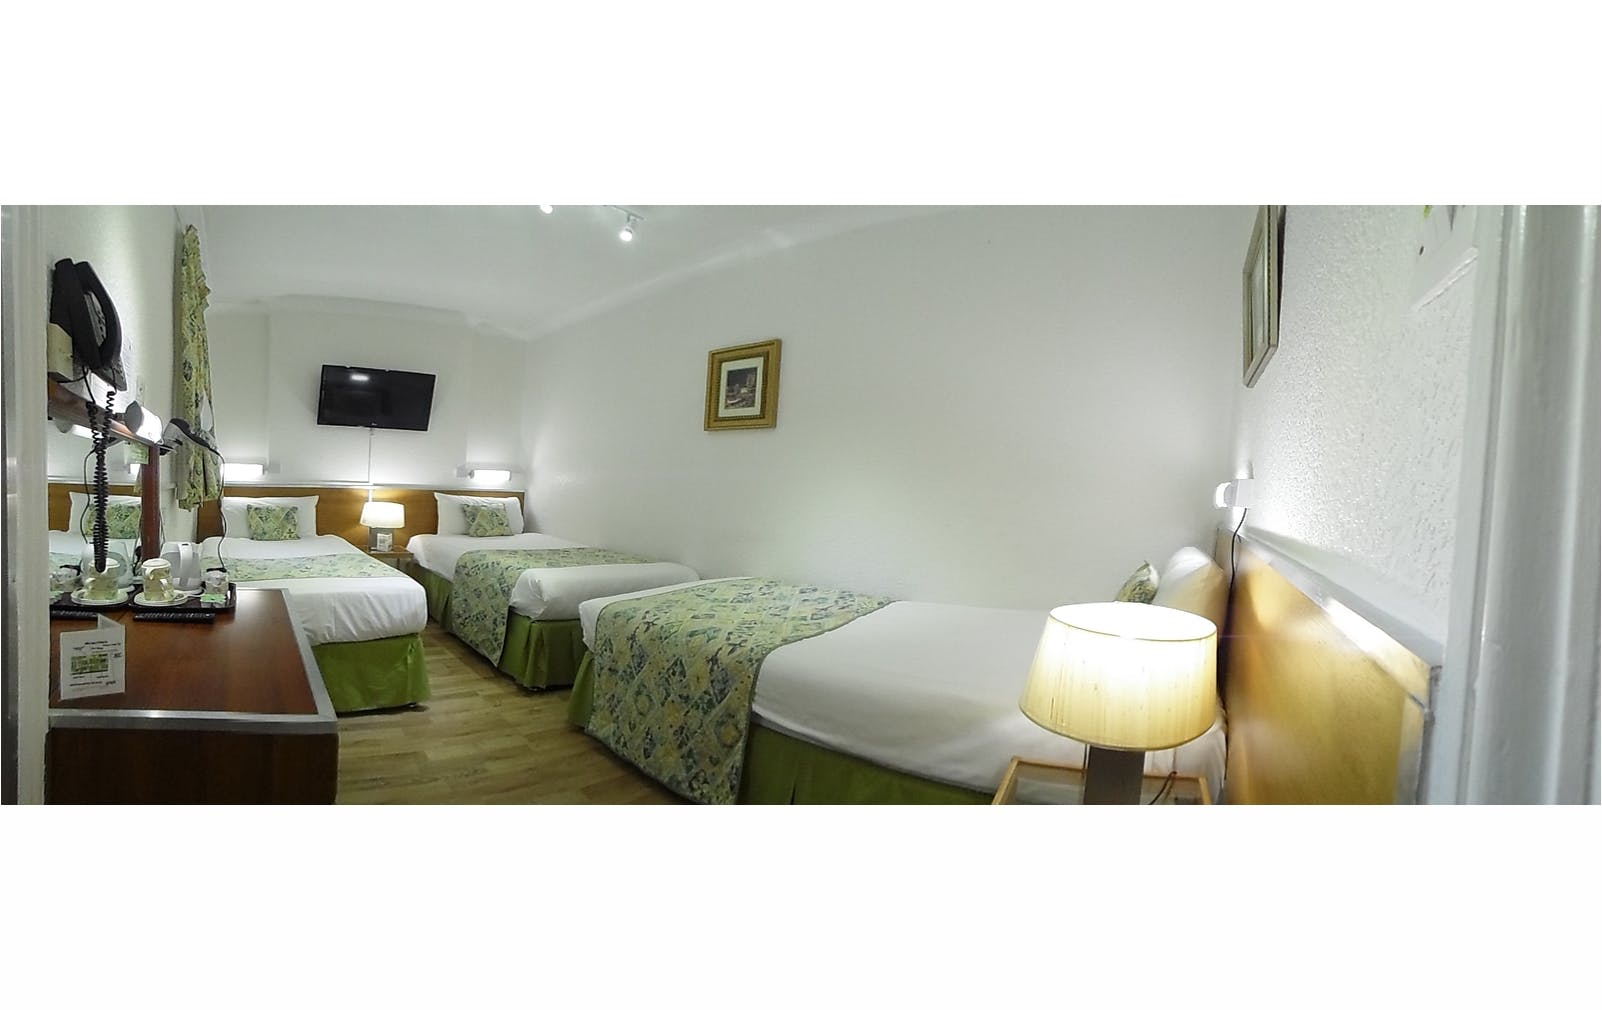 Boutique Hotel central London B&B Accommodation room for 3